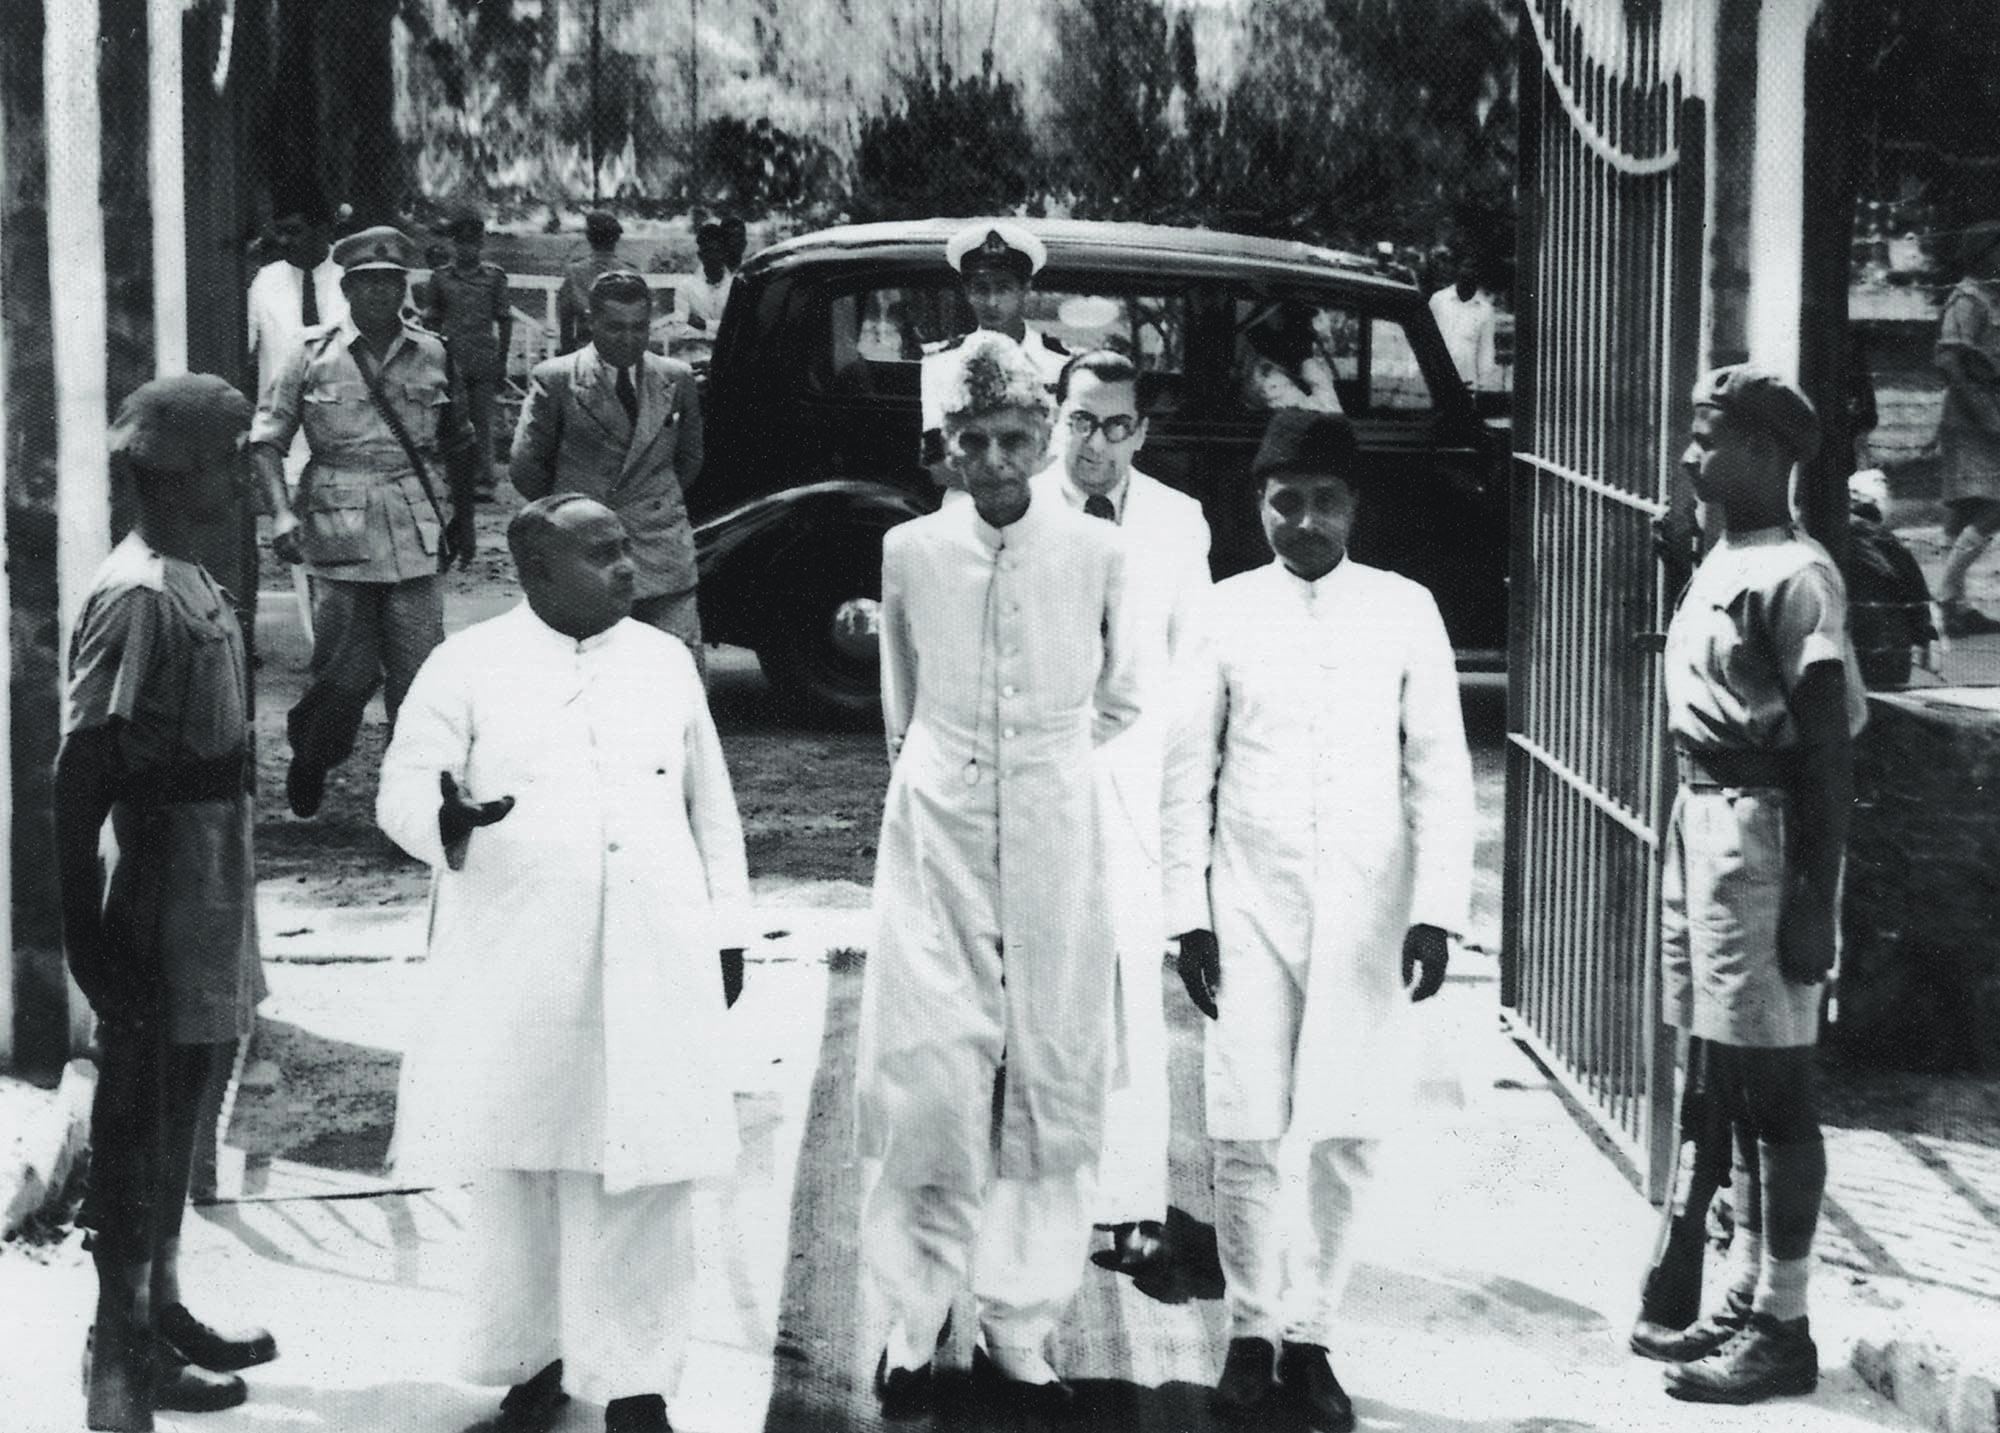 THE LAST VISIT: Mr Jinnah was welcomed by Khawaja Nazimuddin (left) when he arrived at the Governor-General House in Dhaka. This was Mr Jinnah's first visit to East Pakistan as Governor-General, which turned out to be his last as well.